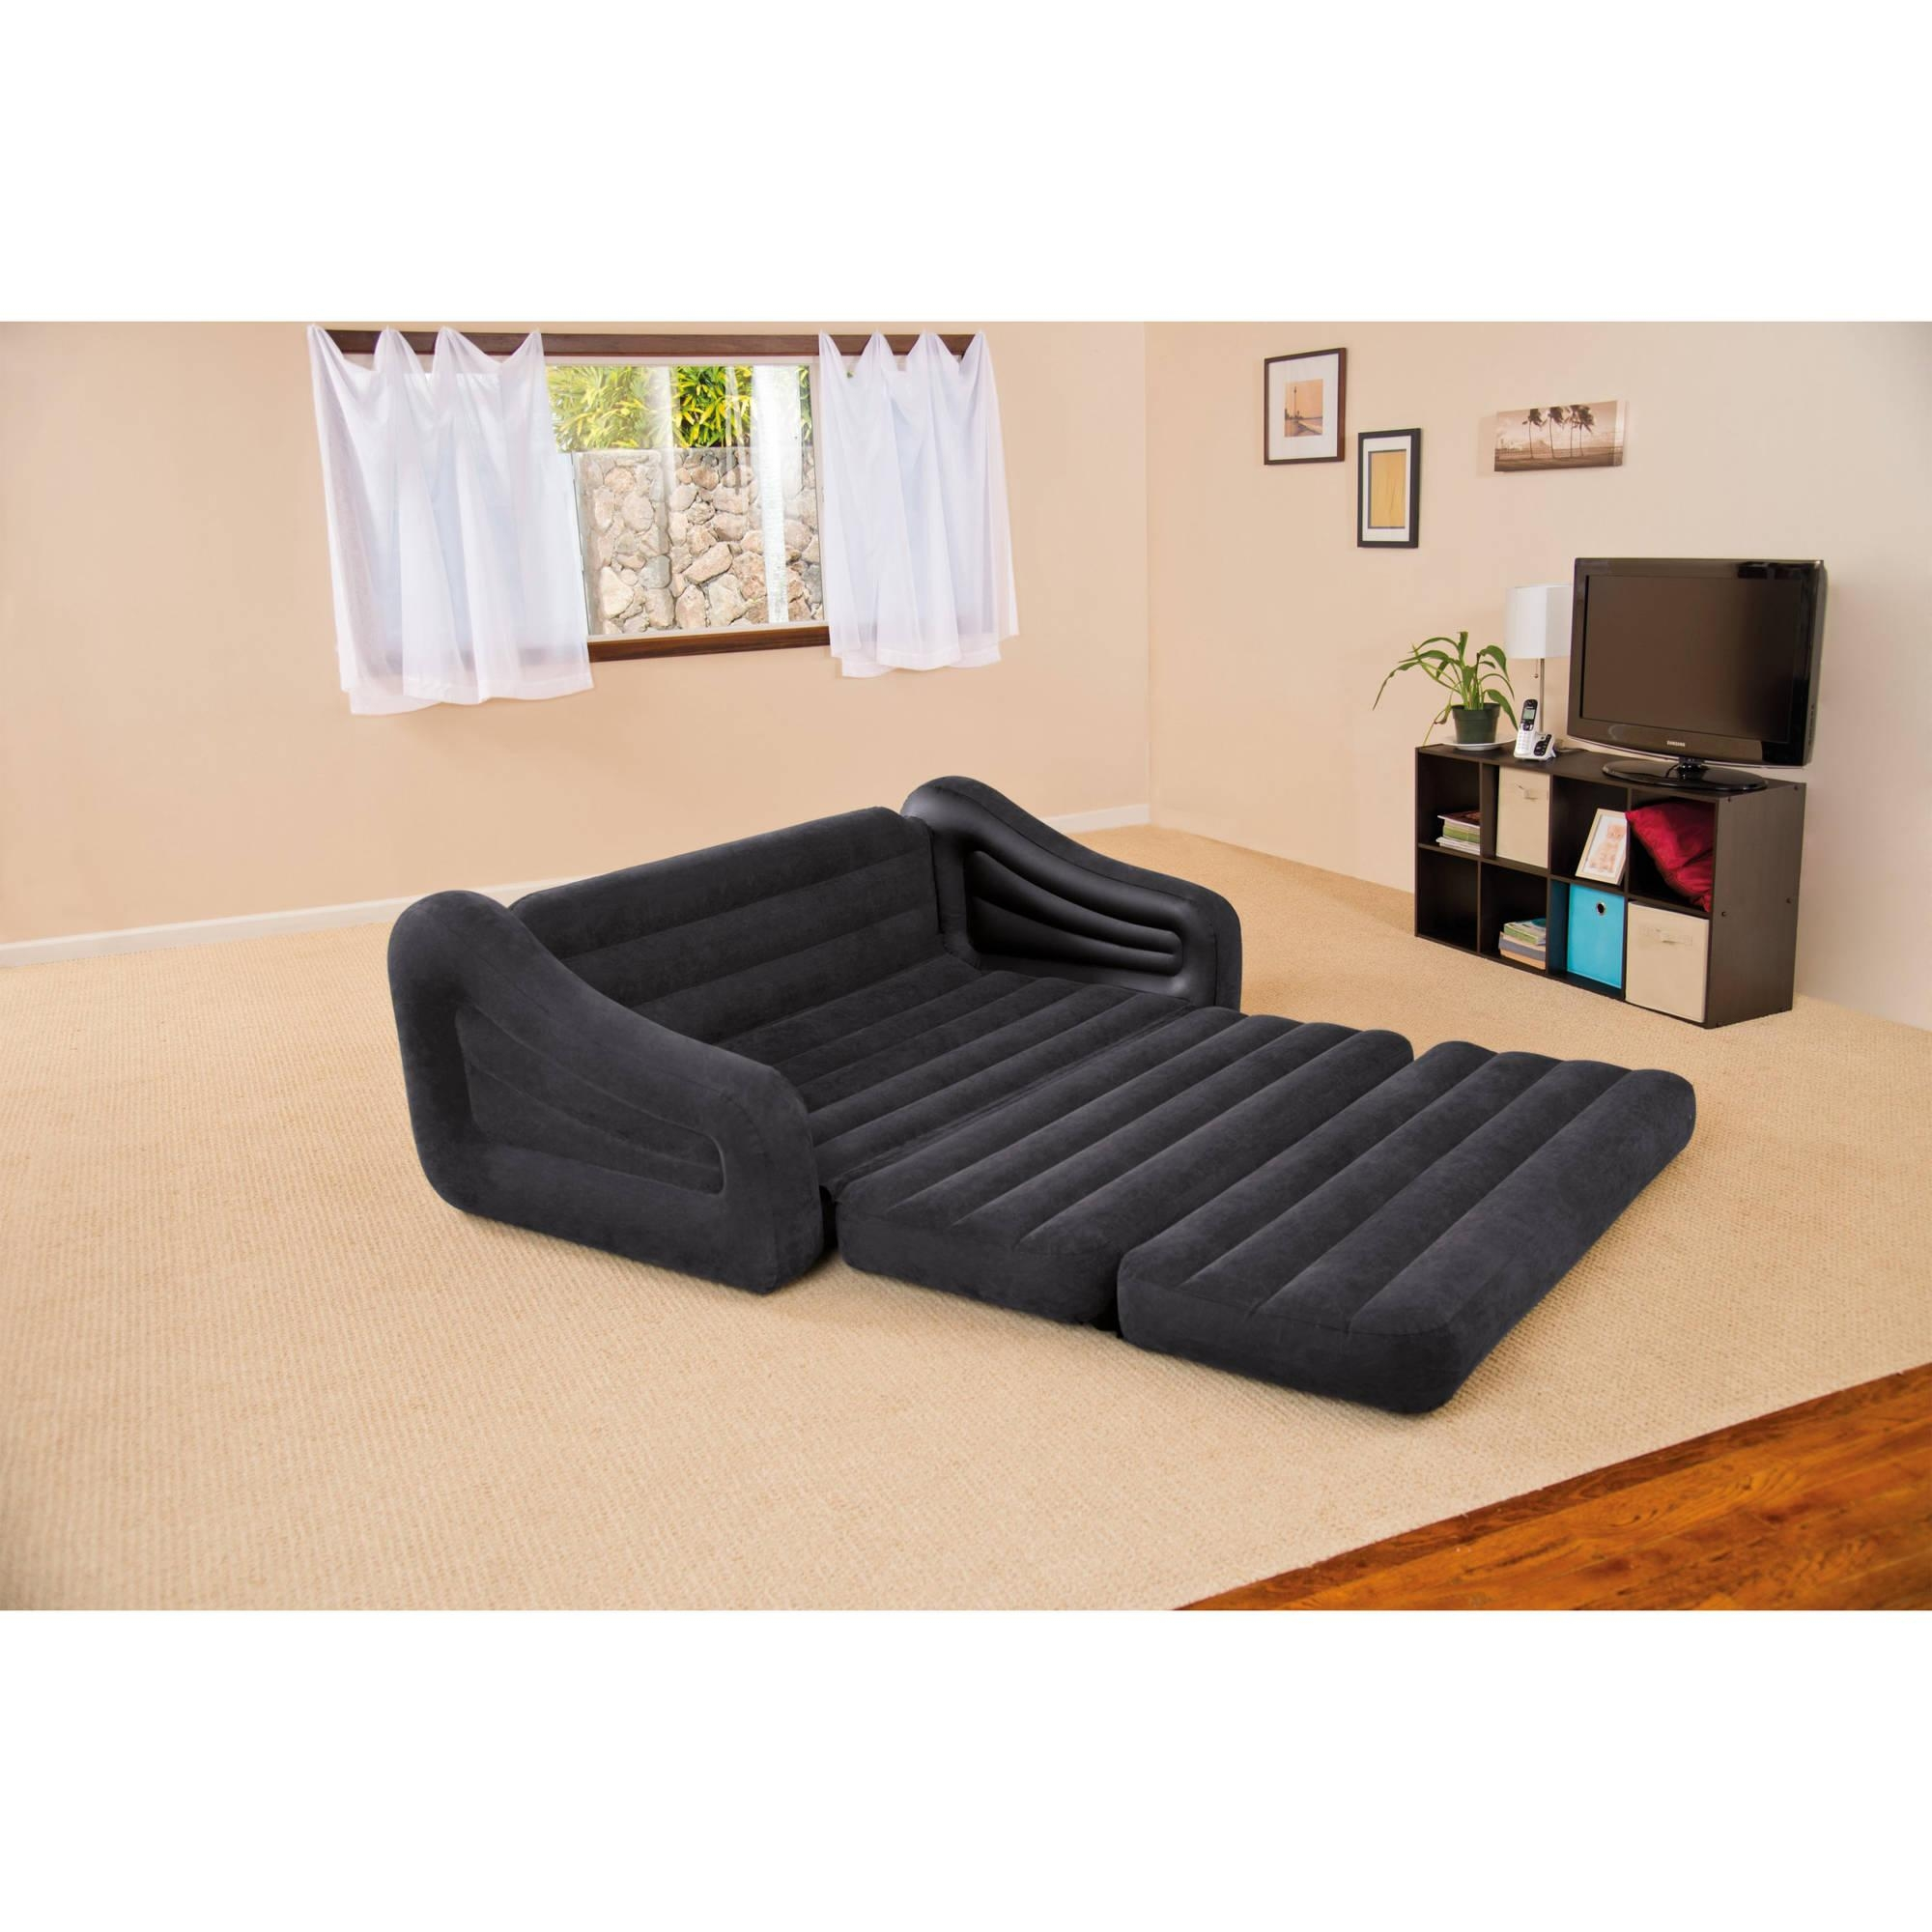 Intex Queen Inflatable Pull Out Sofa Bed – Walmart Within Pull Out Sofa Chairs (Image 8 of 20)